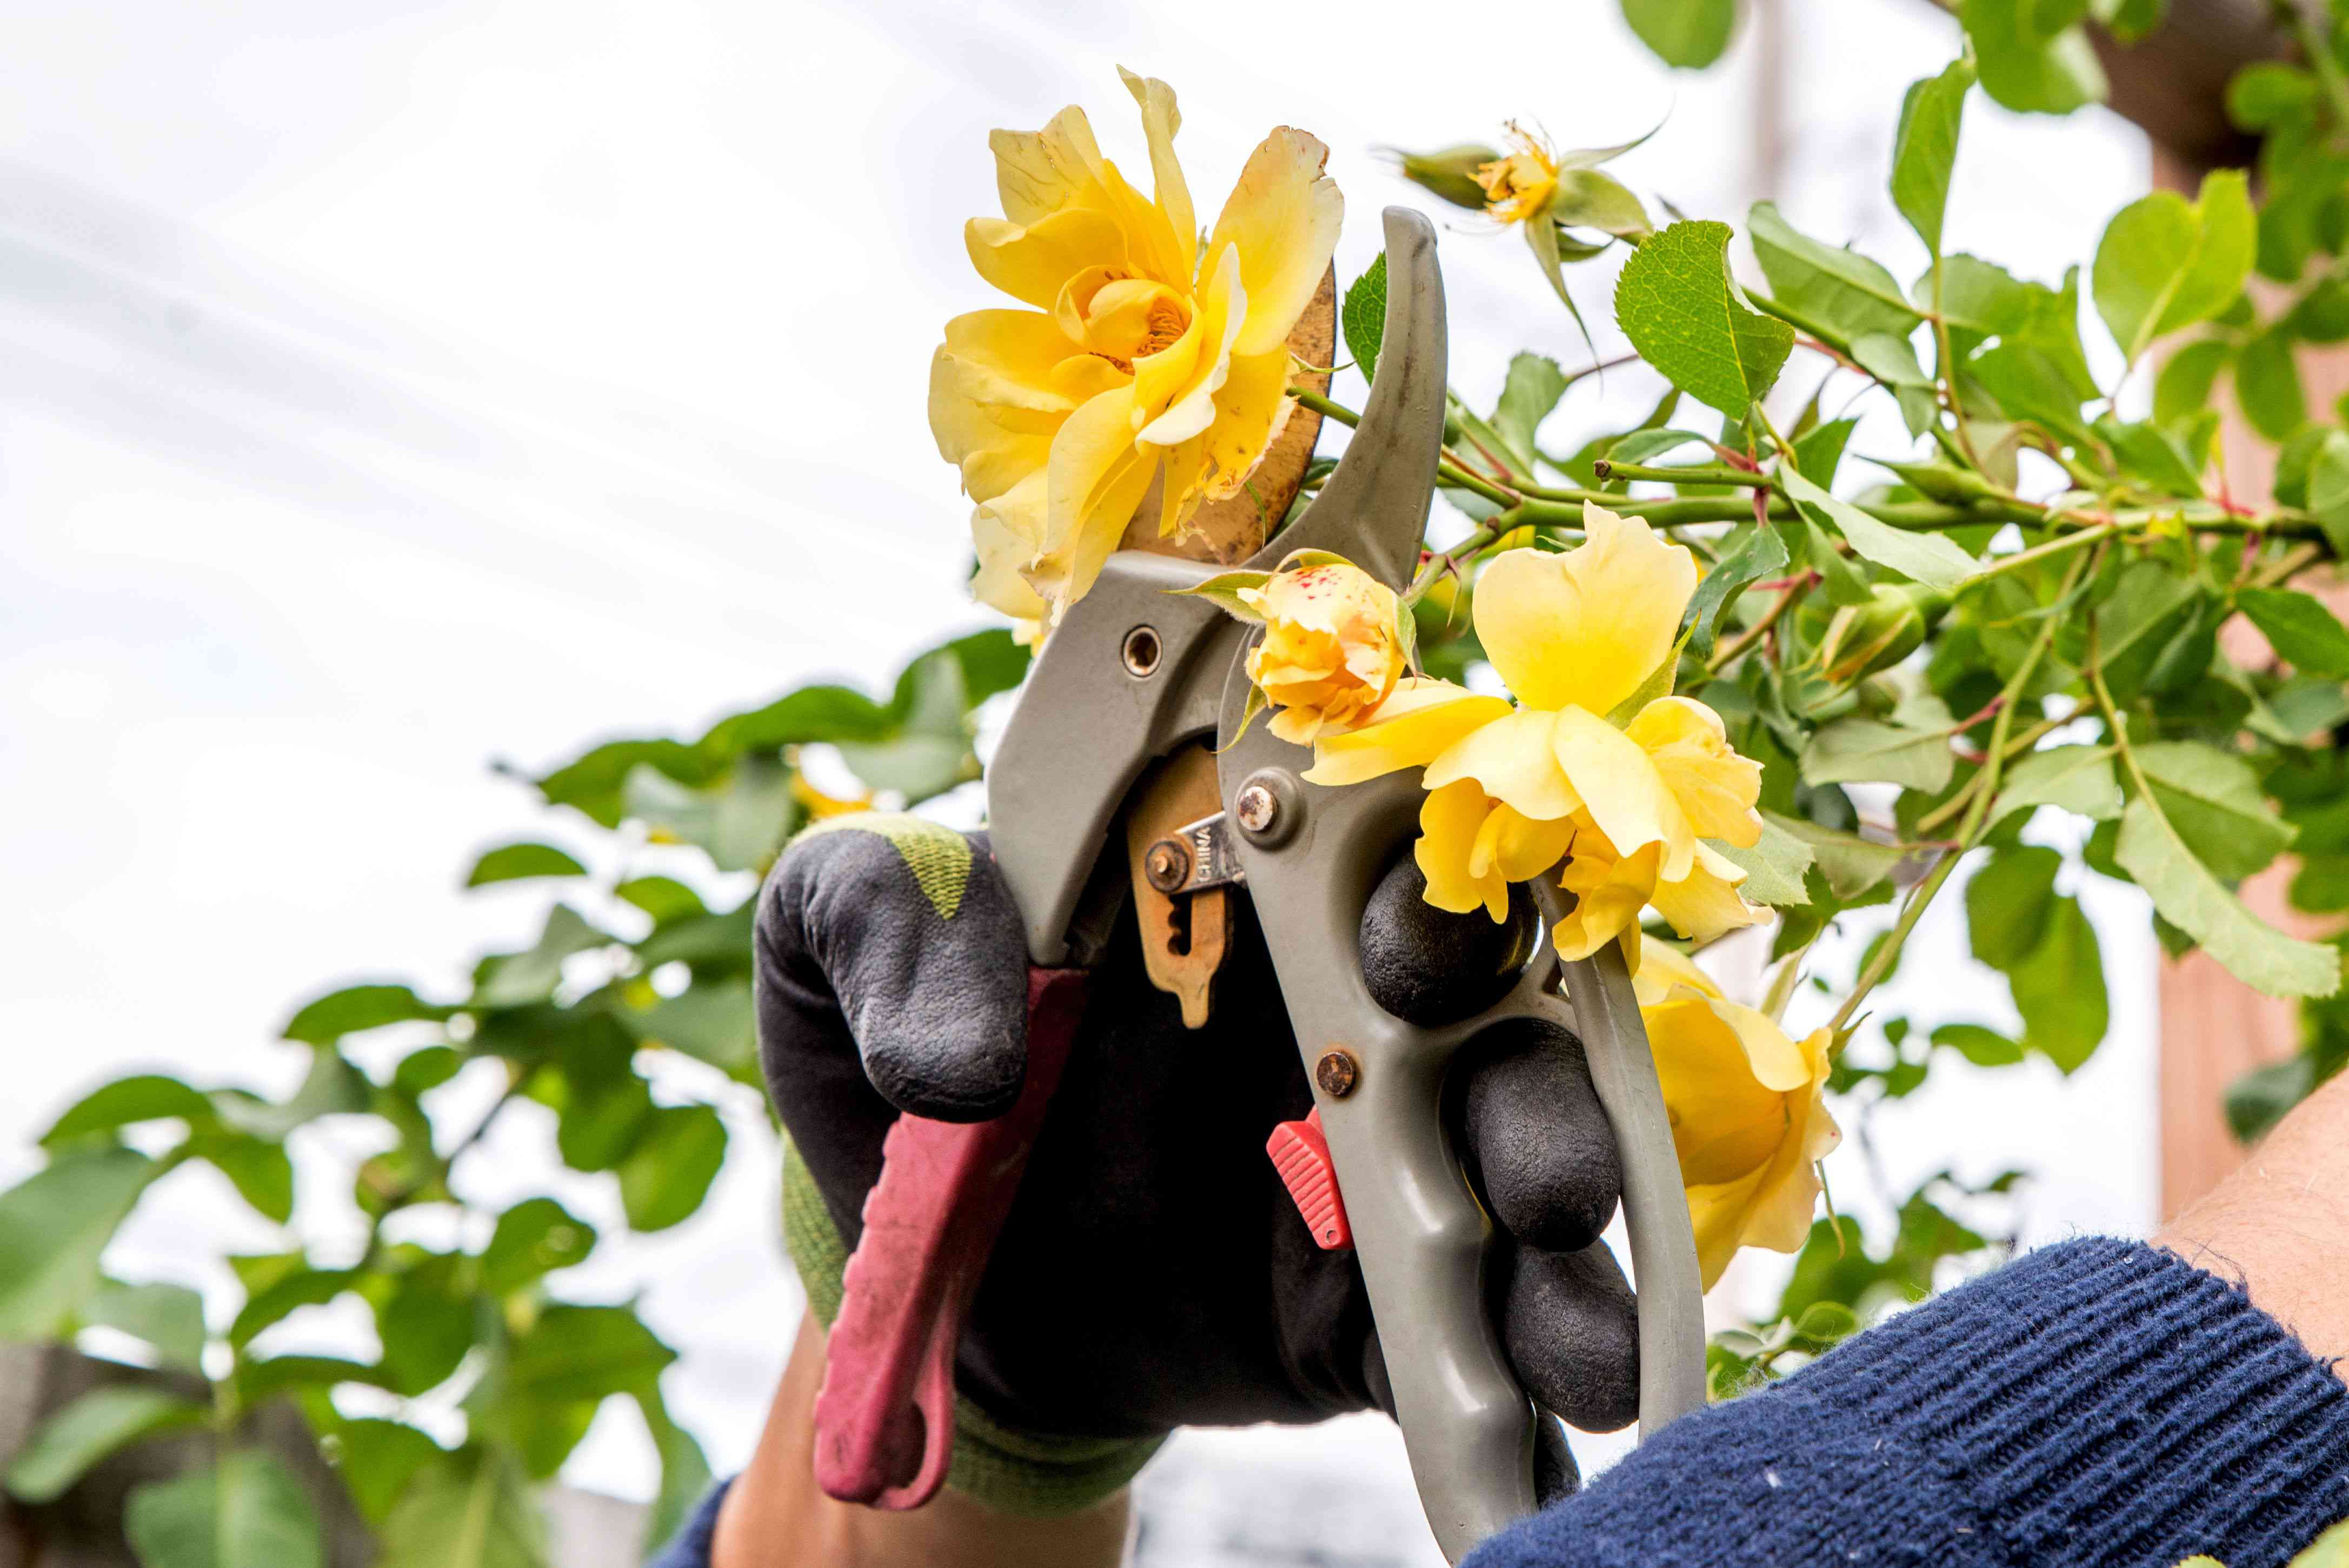 Rose bush branch with yellow flowers being cut with hand-held sheers